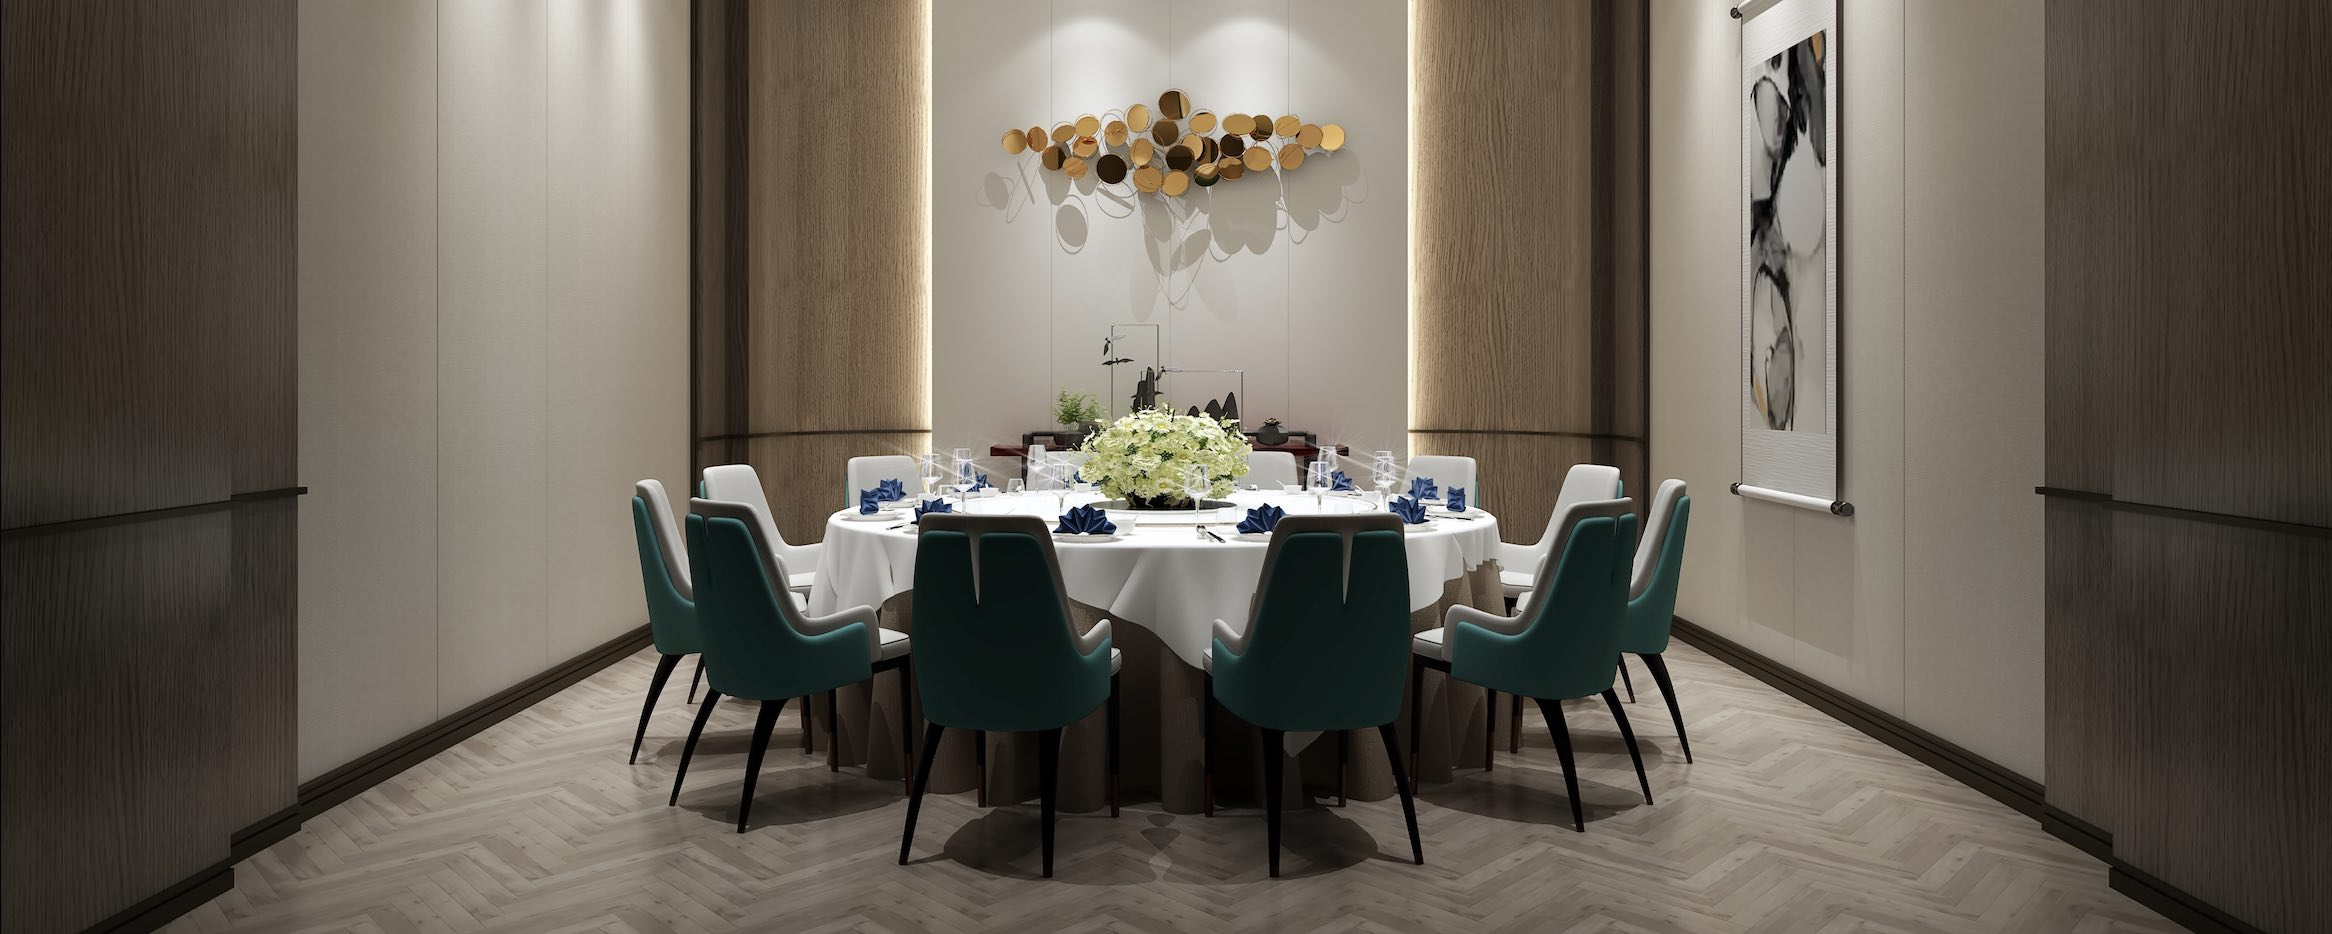 a-licensed-chinese-restaurant-with-14-private-dining-rooms-is-opening-in-dubai